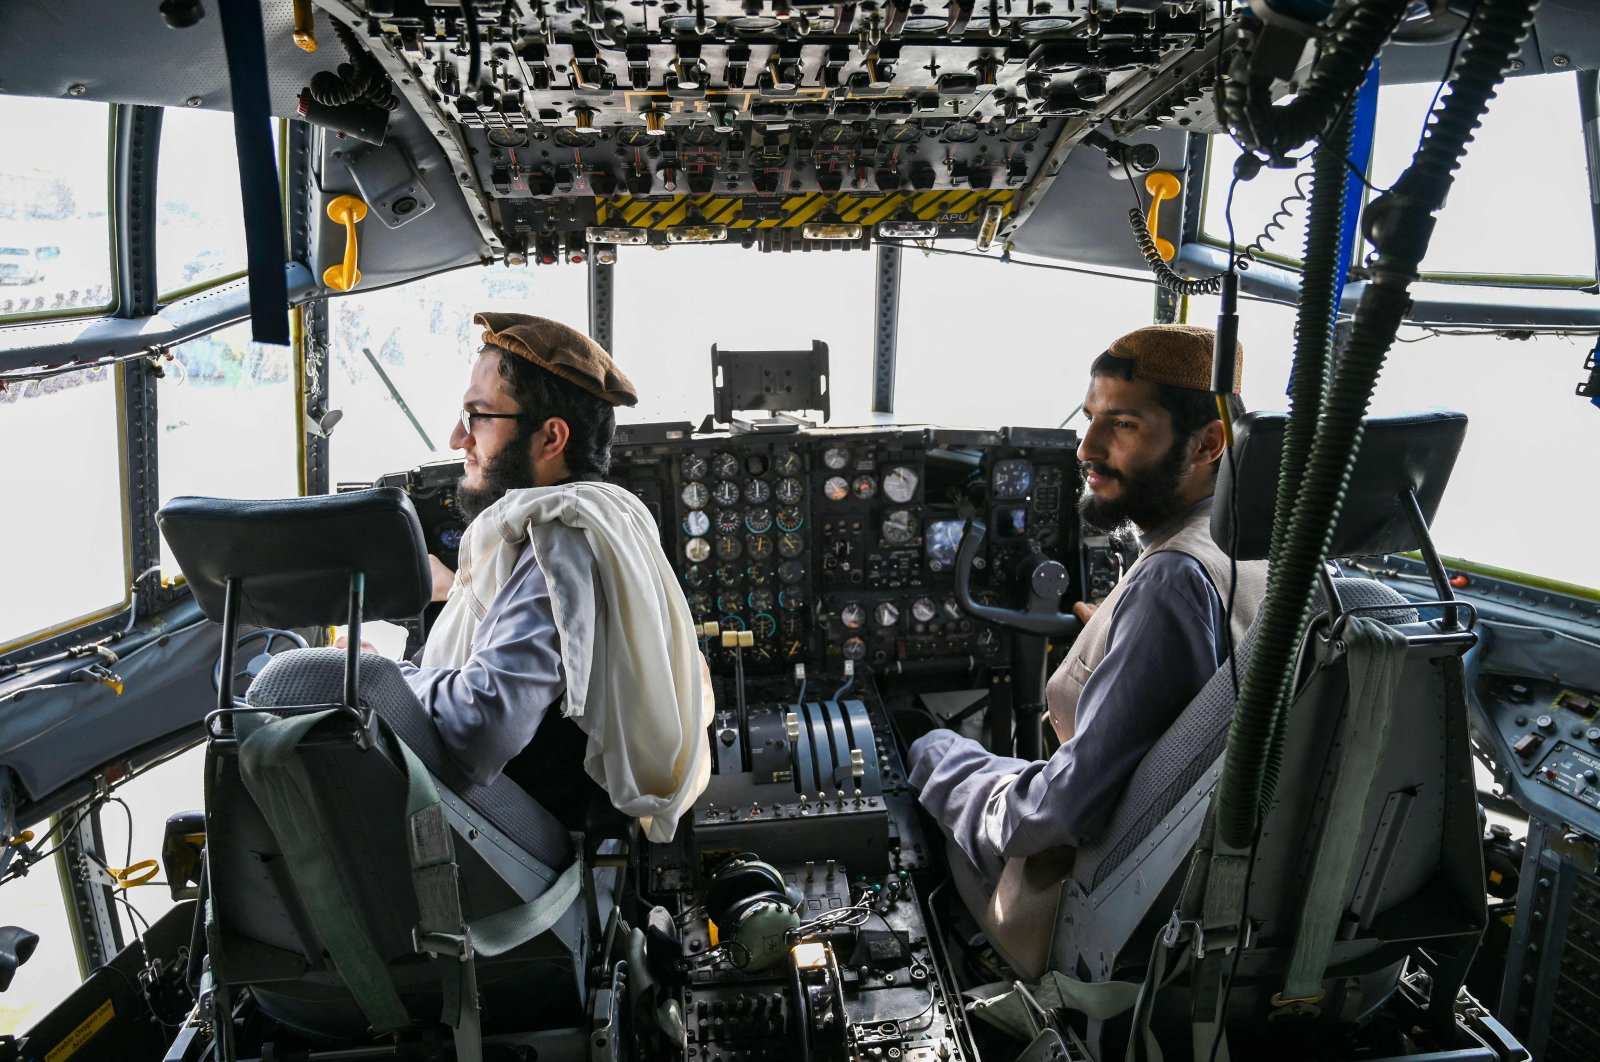 Taliban fighters sit in the cockpit of an Afghan Air Force aircraft at the airport in Kabul, Afghanistan, Aug. 31, 2021. (AFP Photo)